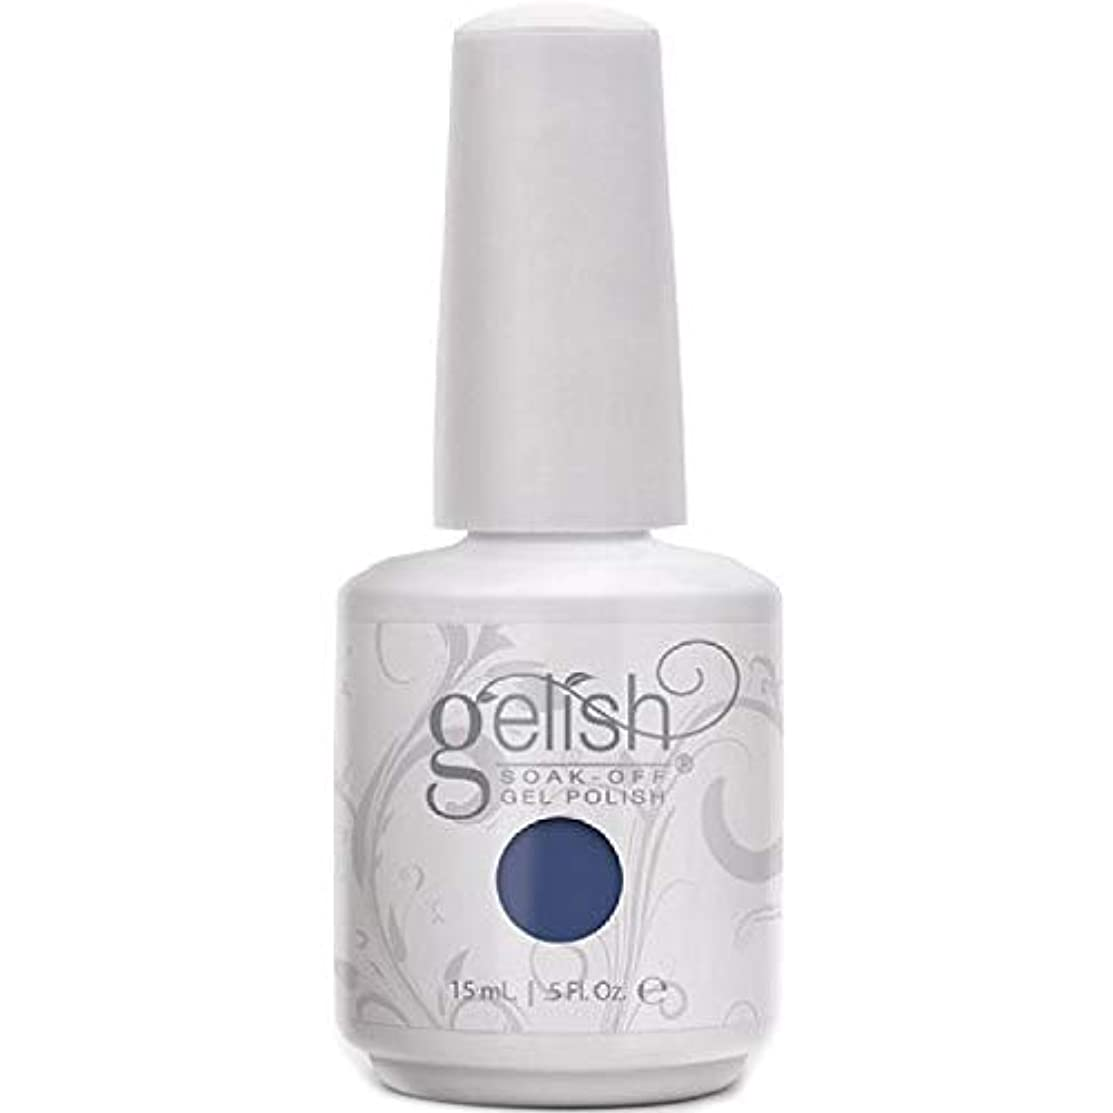 中間スタイルおとこHarmony Gelish Gel Polish - Flirt in a Skating Skirt - 0.5oz / 15ml